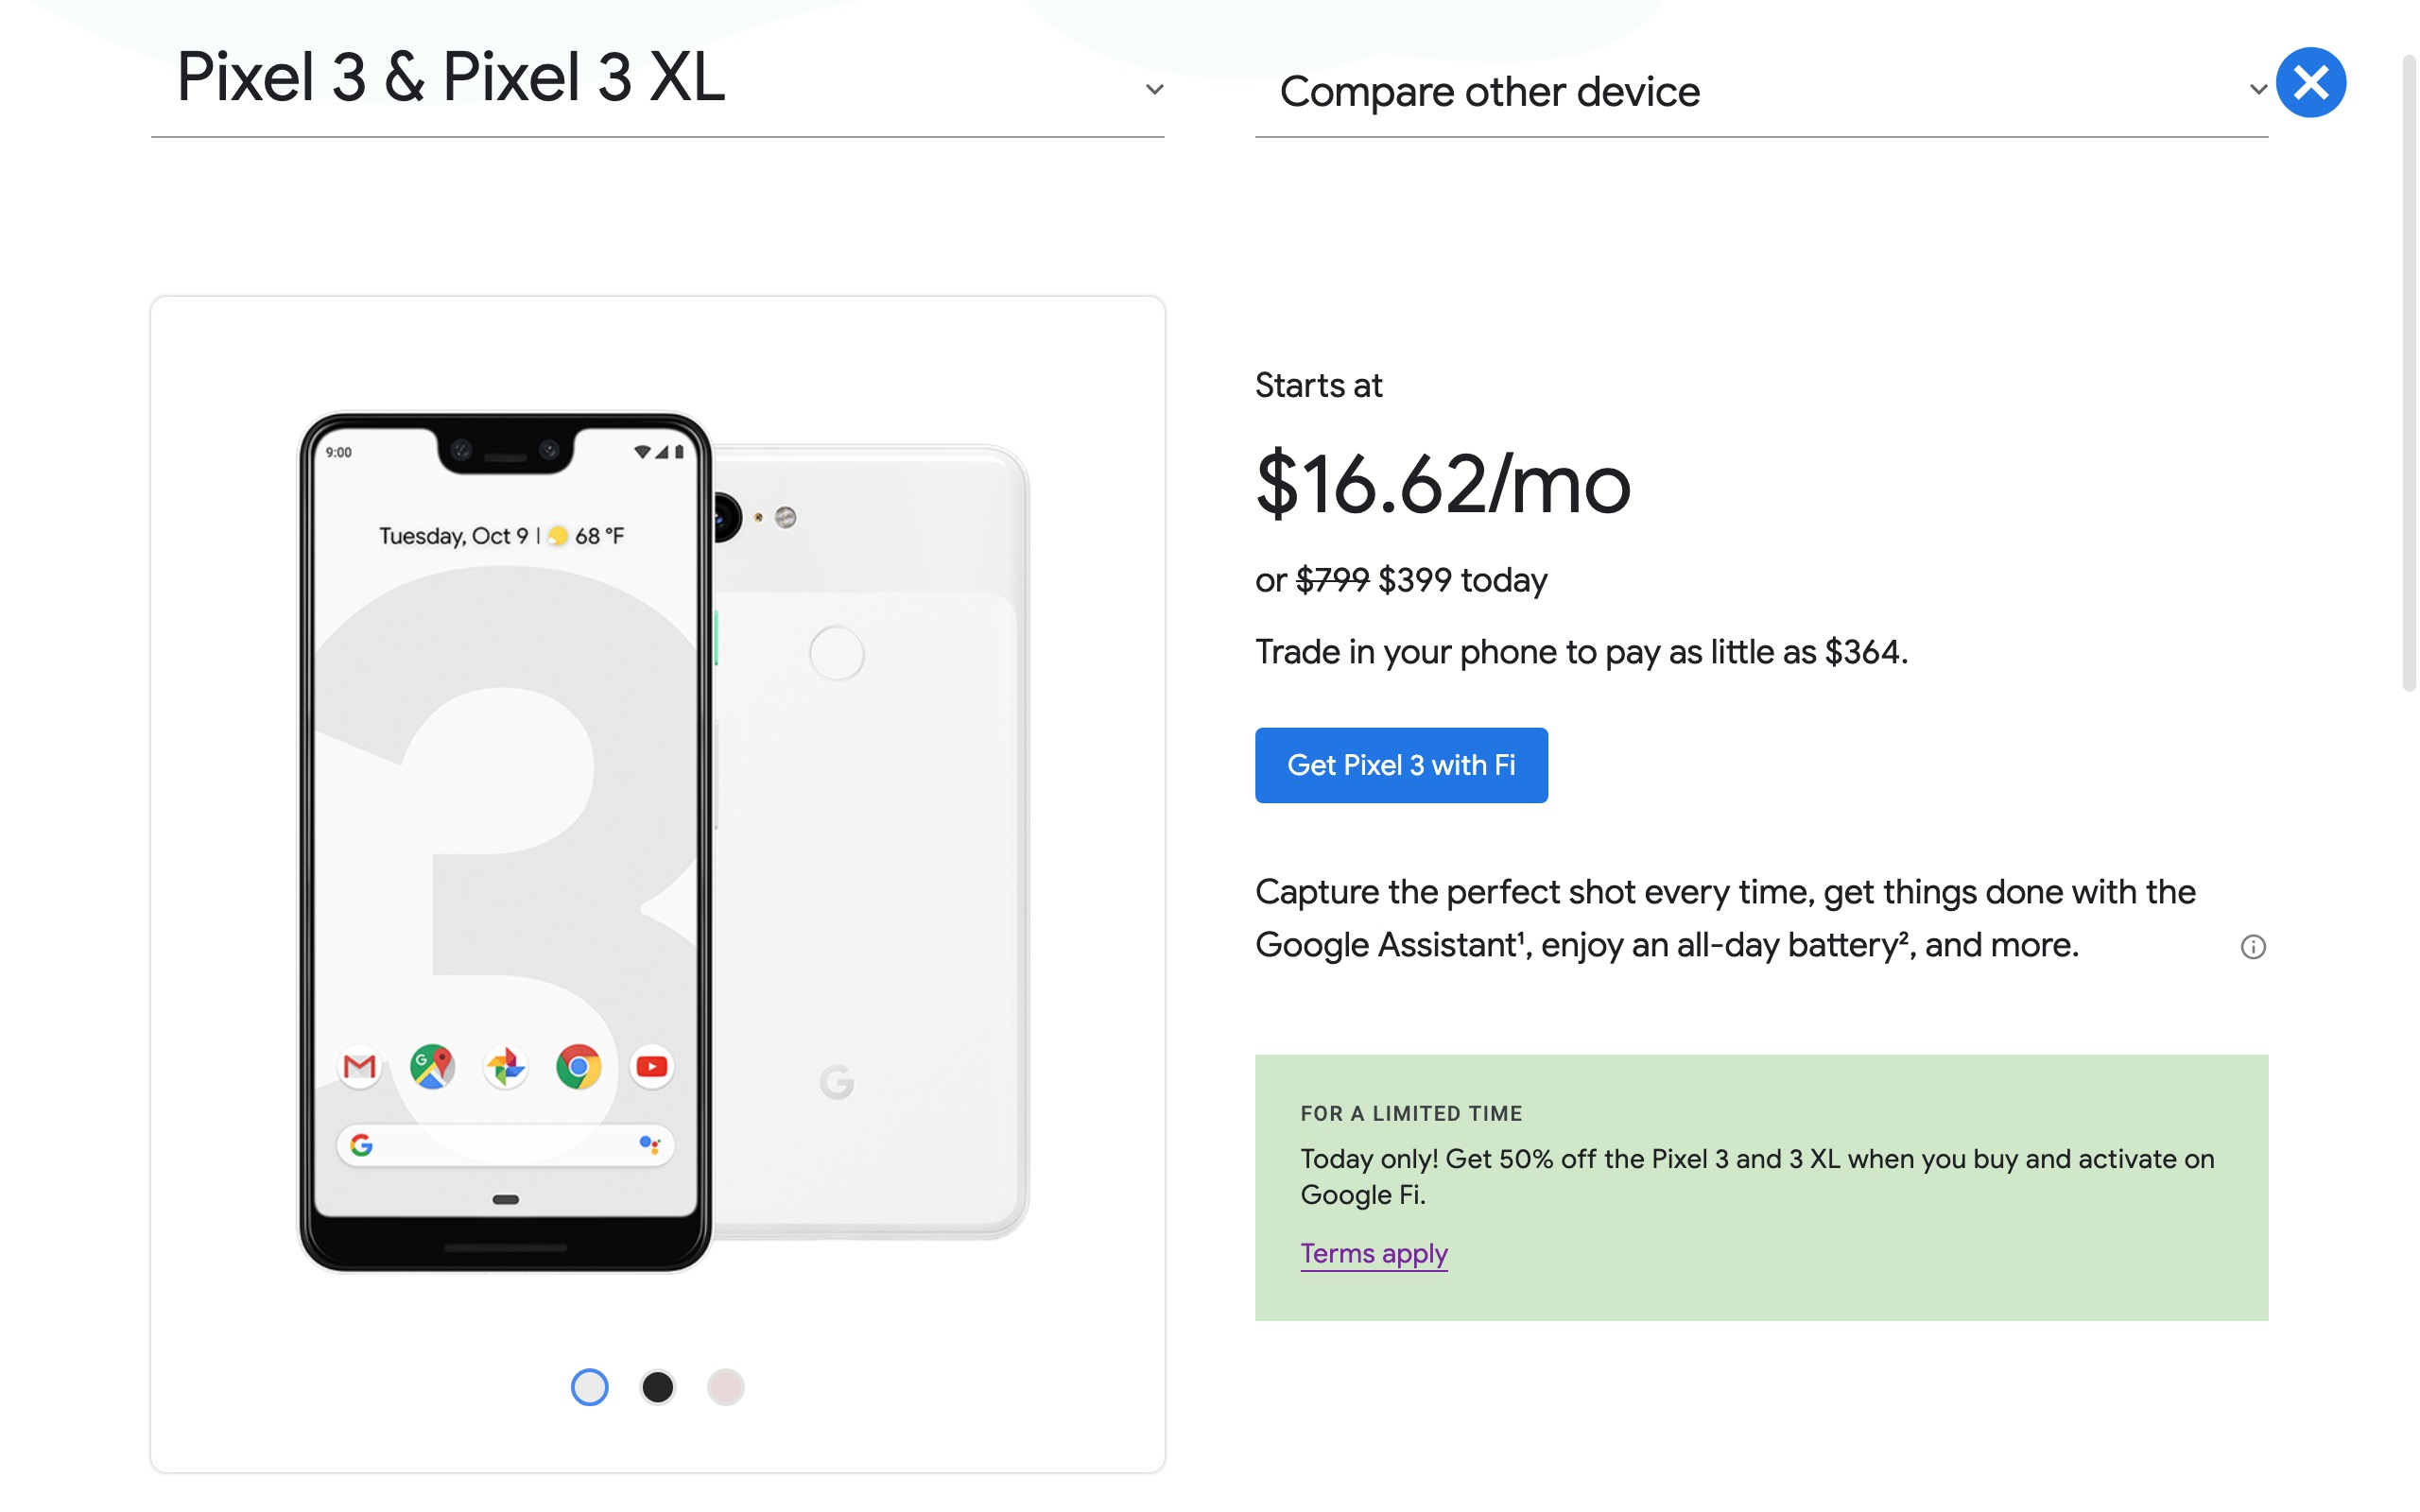 Google Fi celebrates 4th birthday with 50% off Pixel 3 and Pixel 3 XL, today only